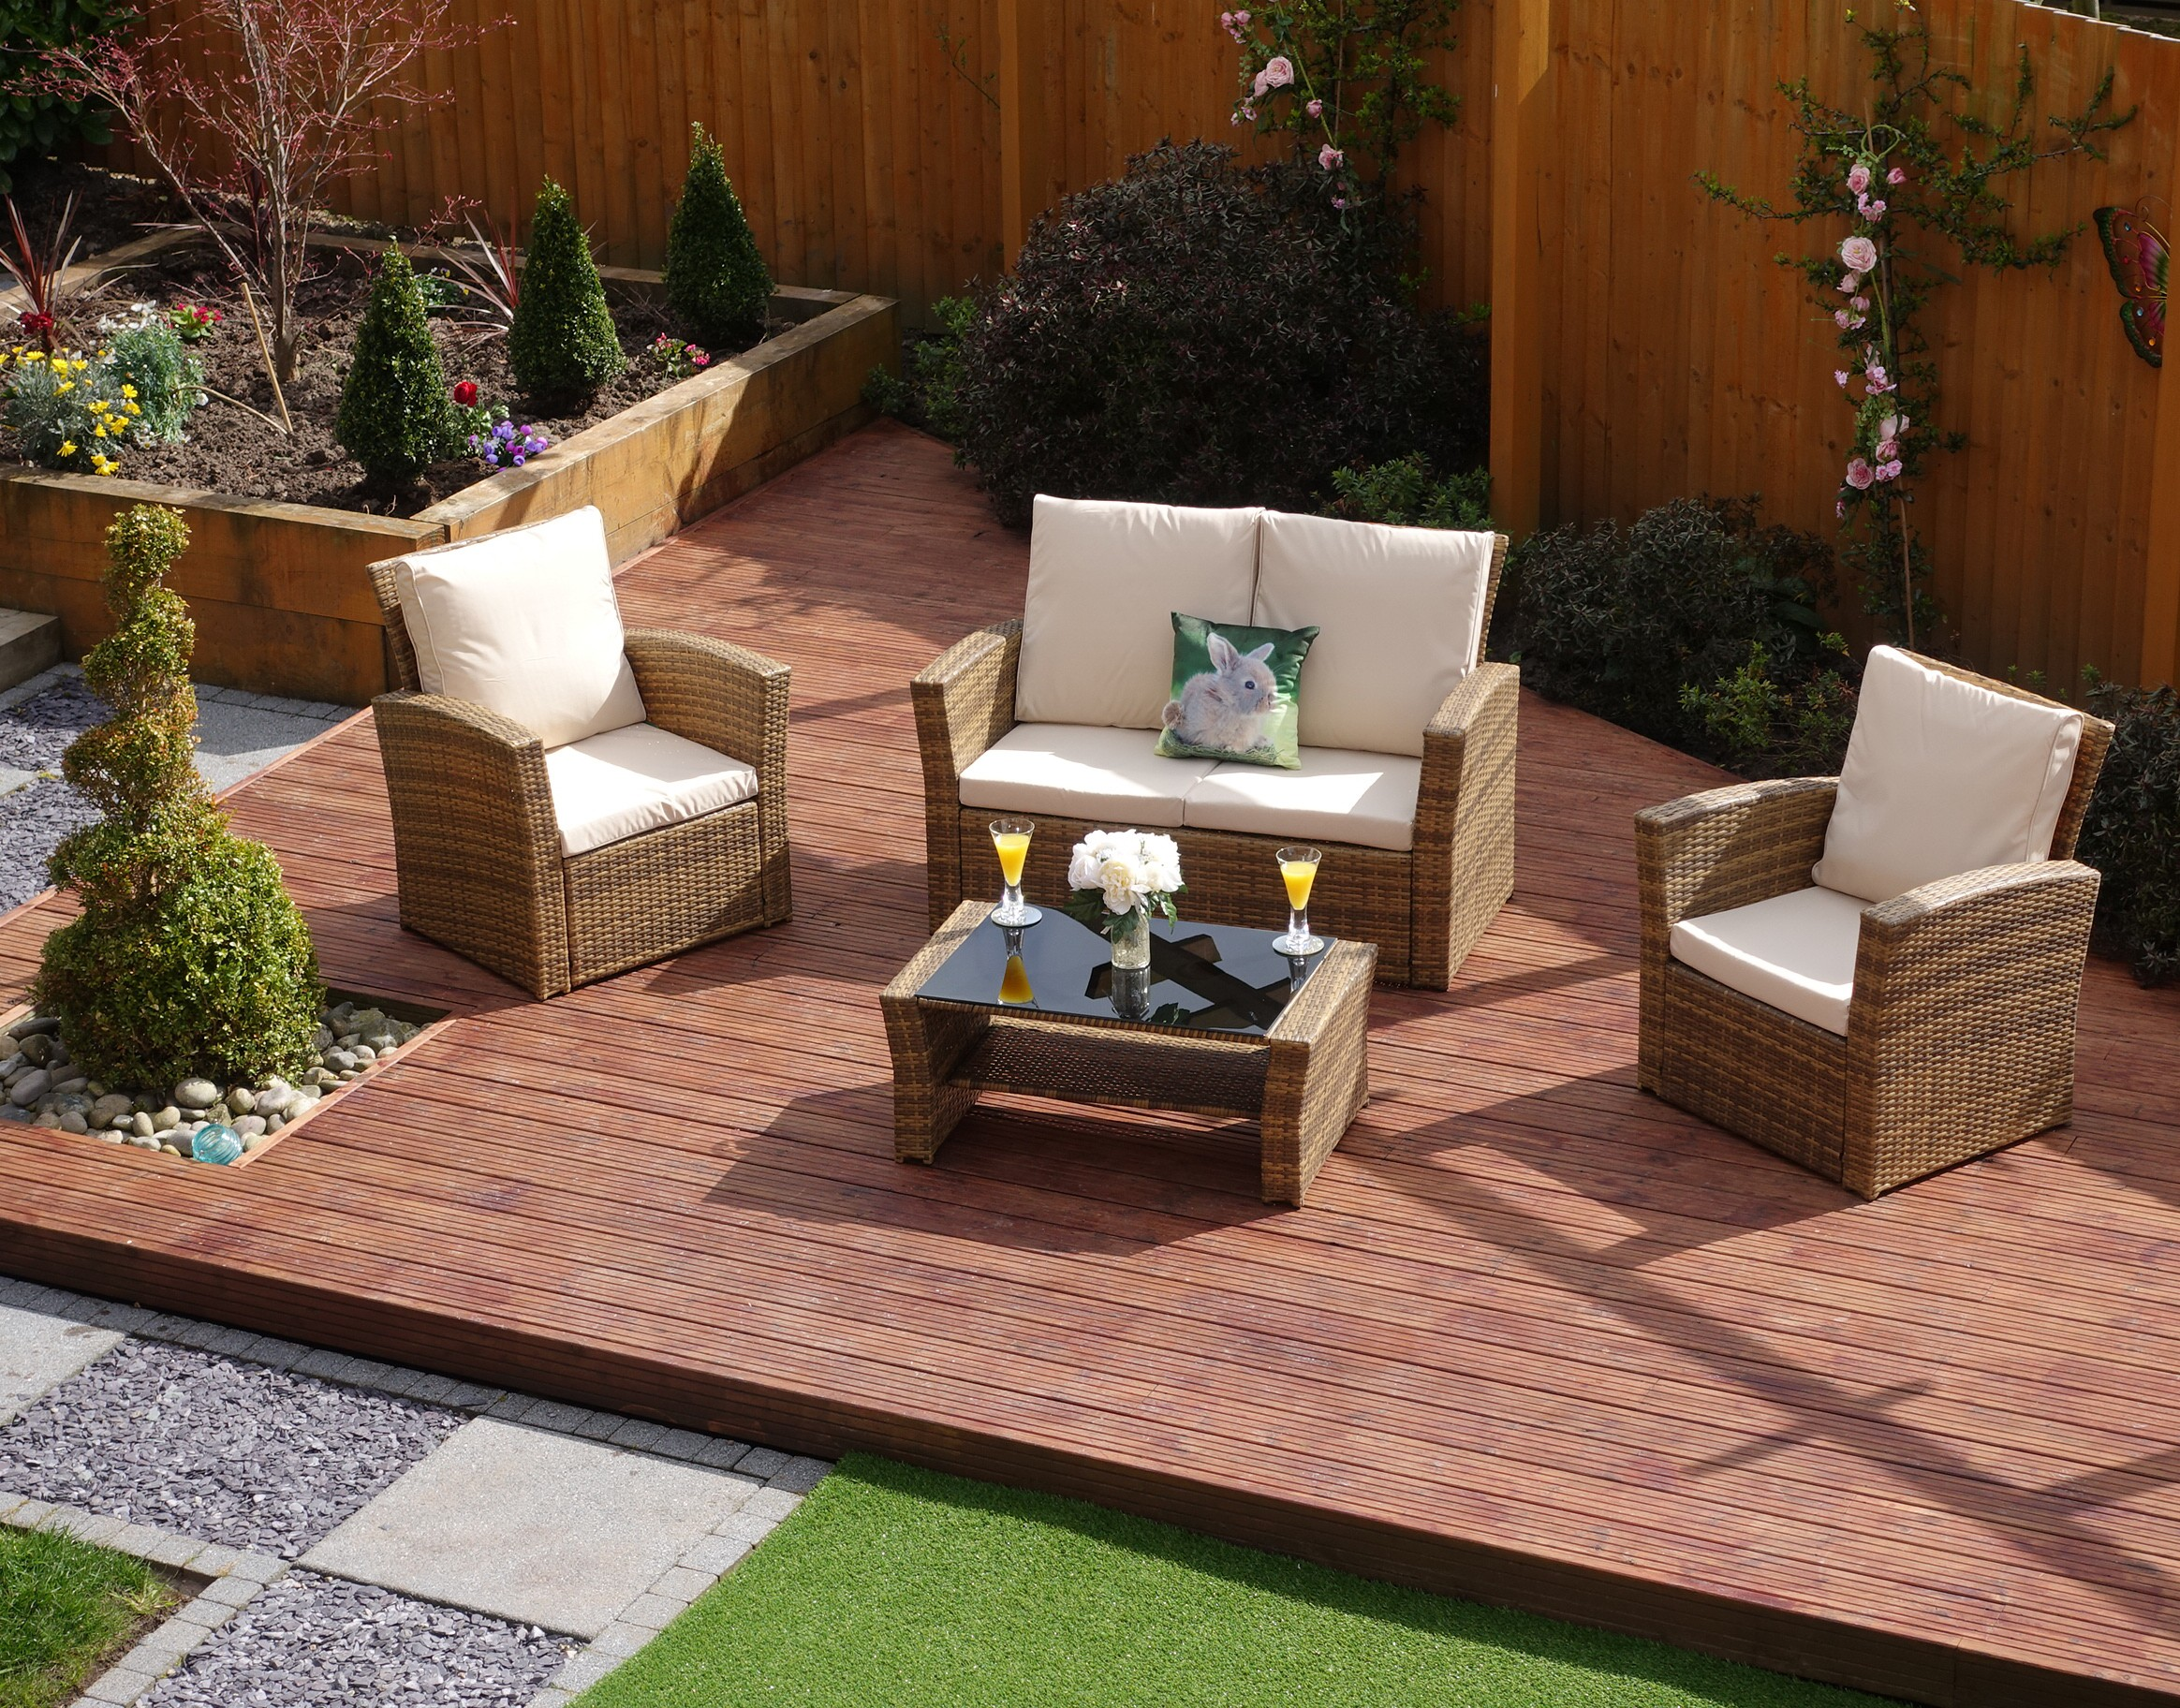 4 Piece Algarve Rattan Sofa Lounge Set For Patios